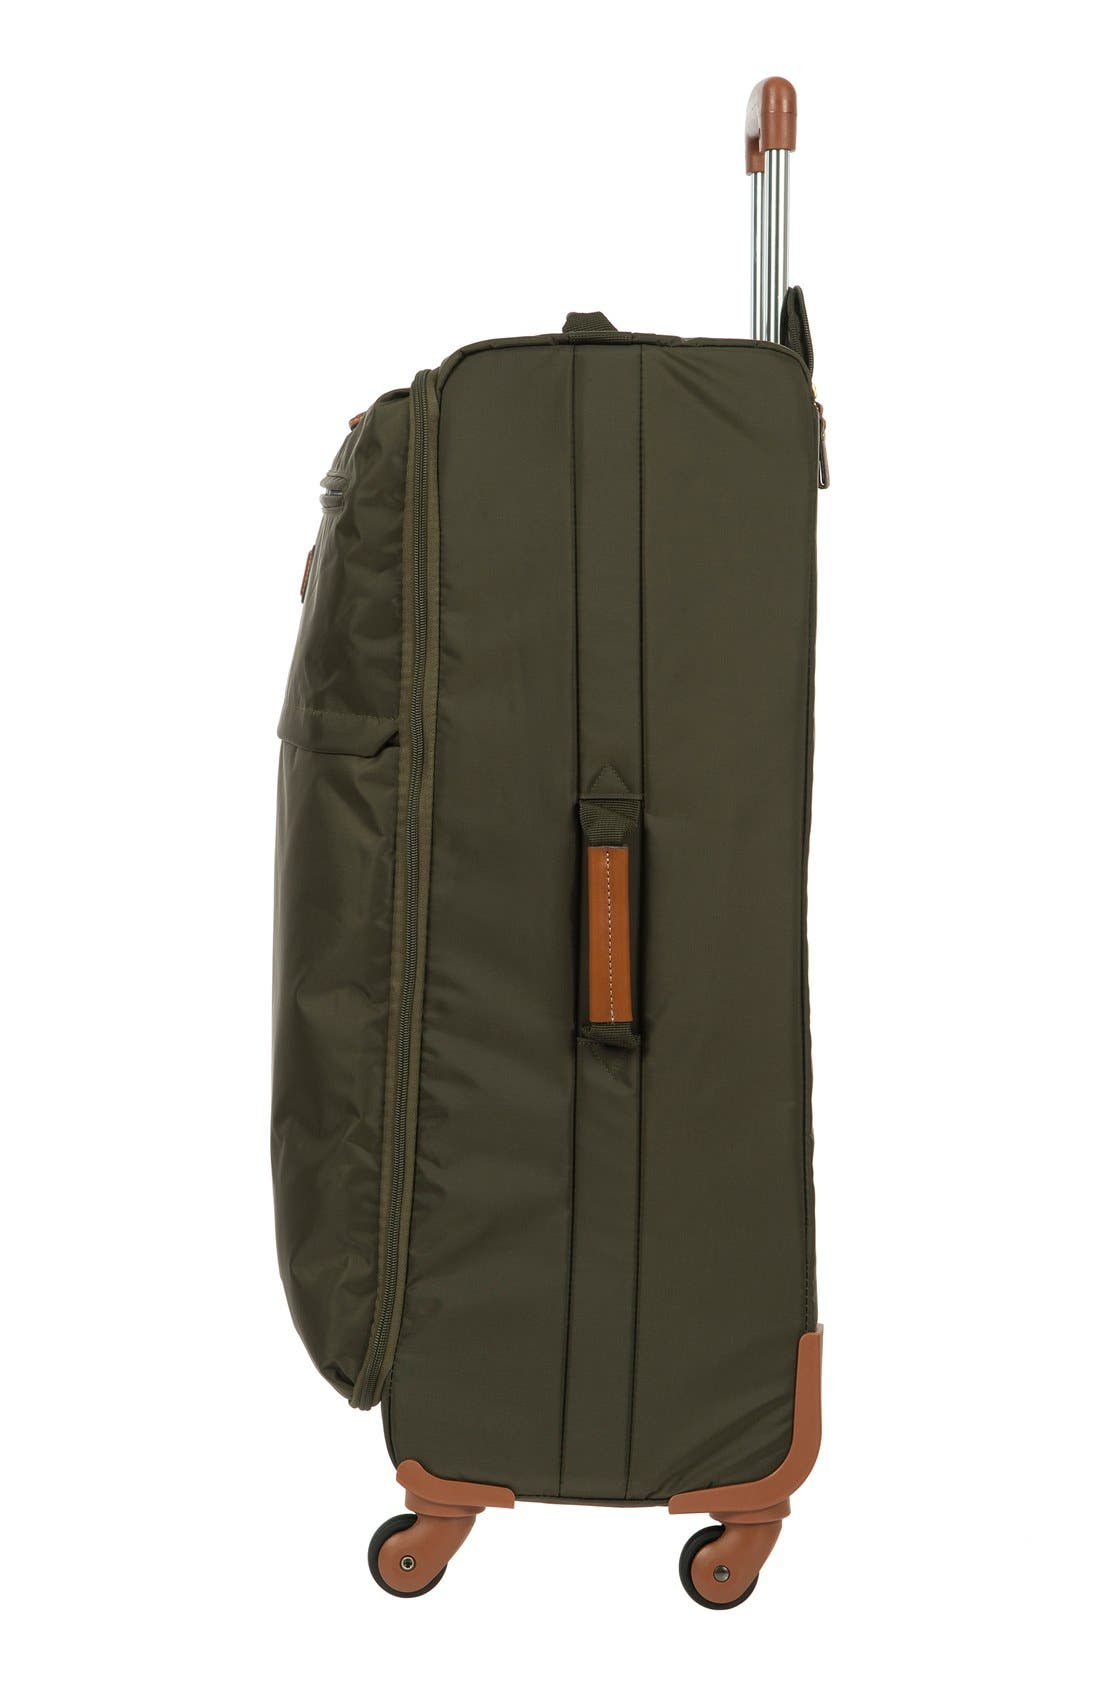 X-Bag 30-Inch Spinner Suitcase,                             Alternate thumbnail 9, color,                             OLIVE